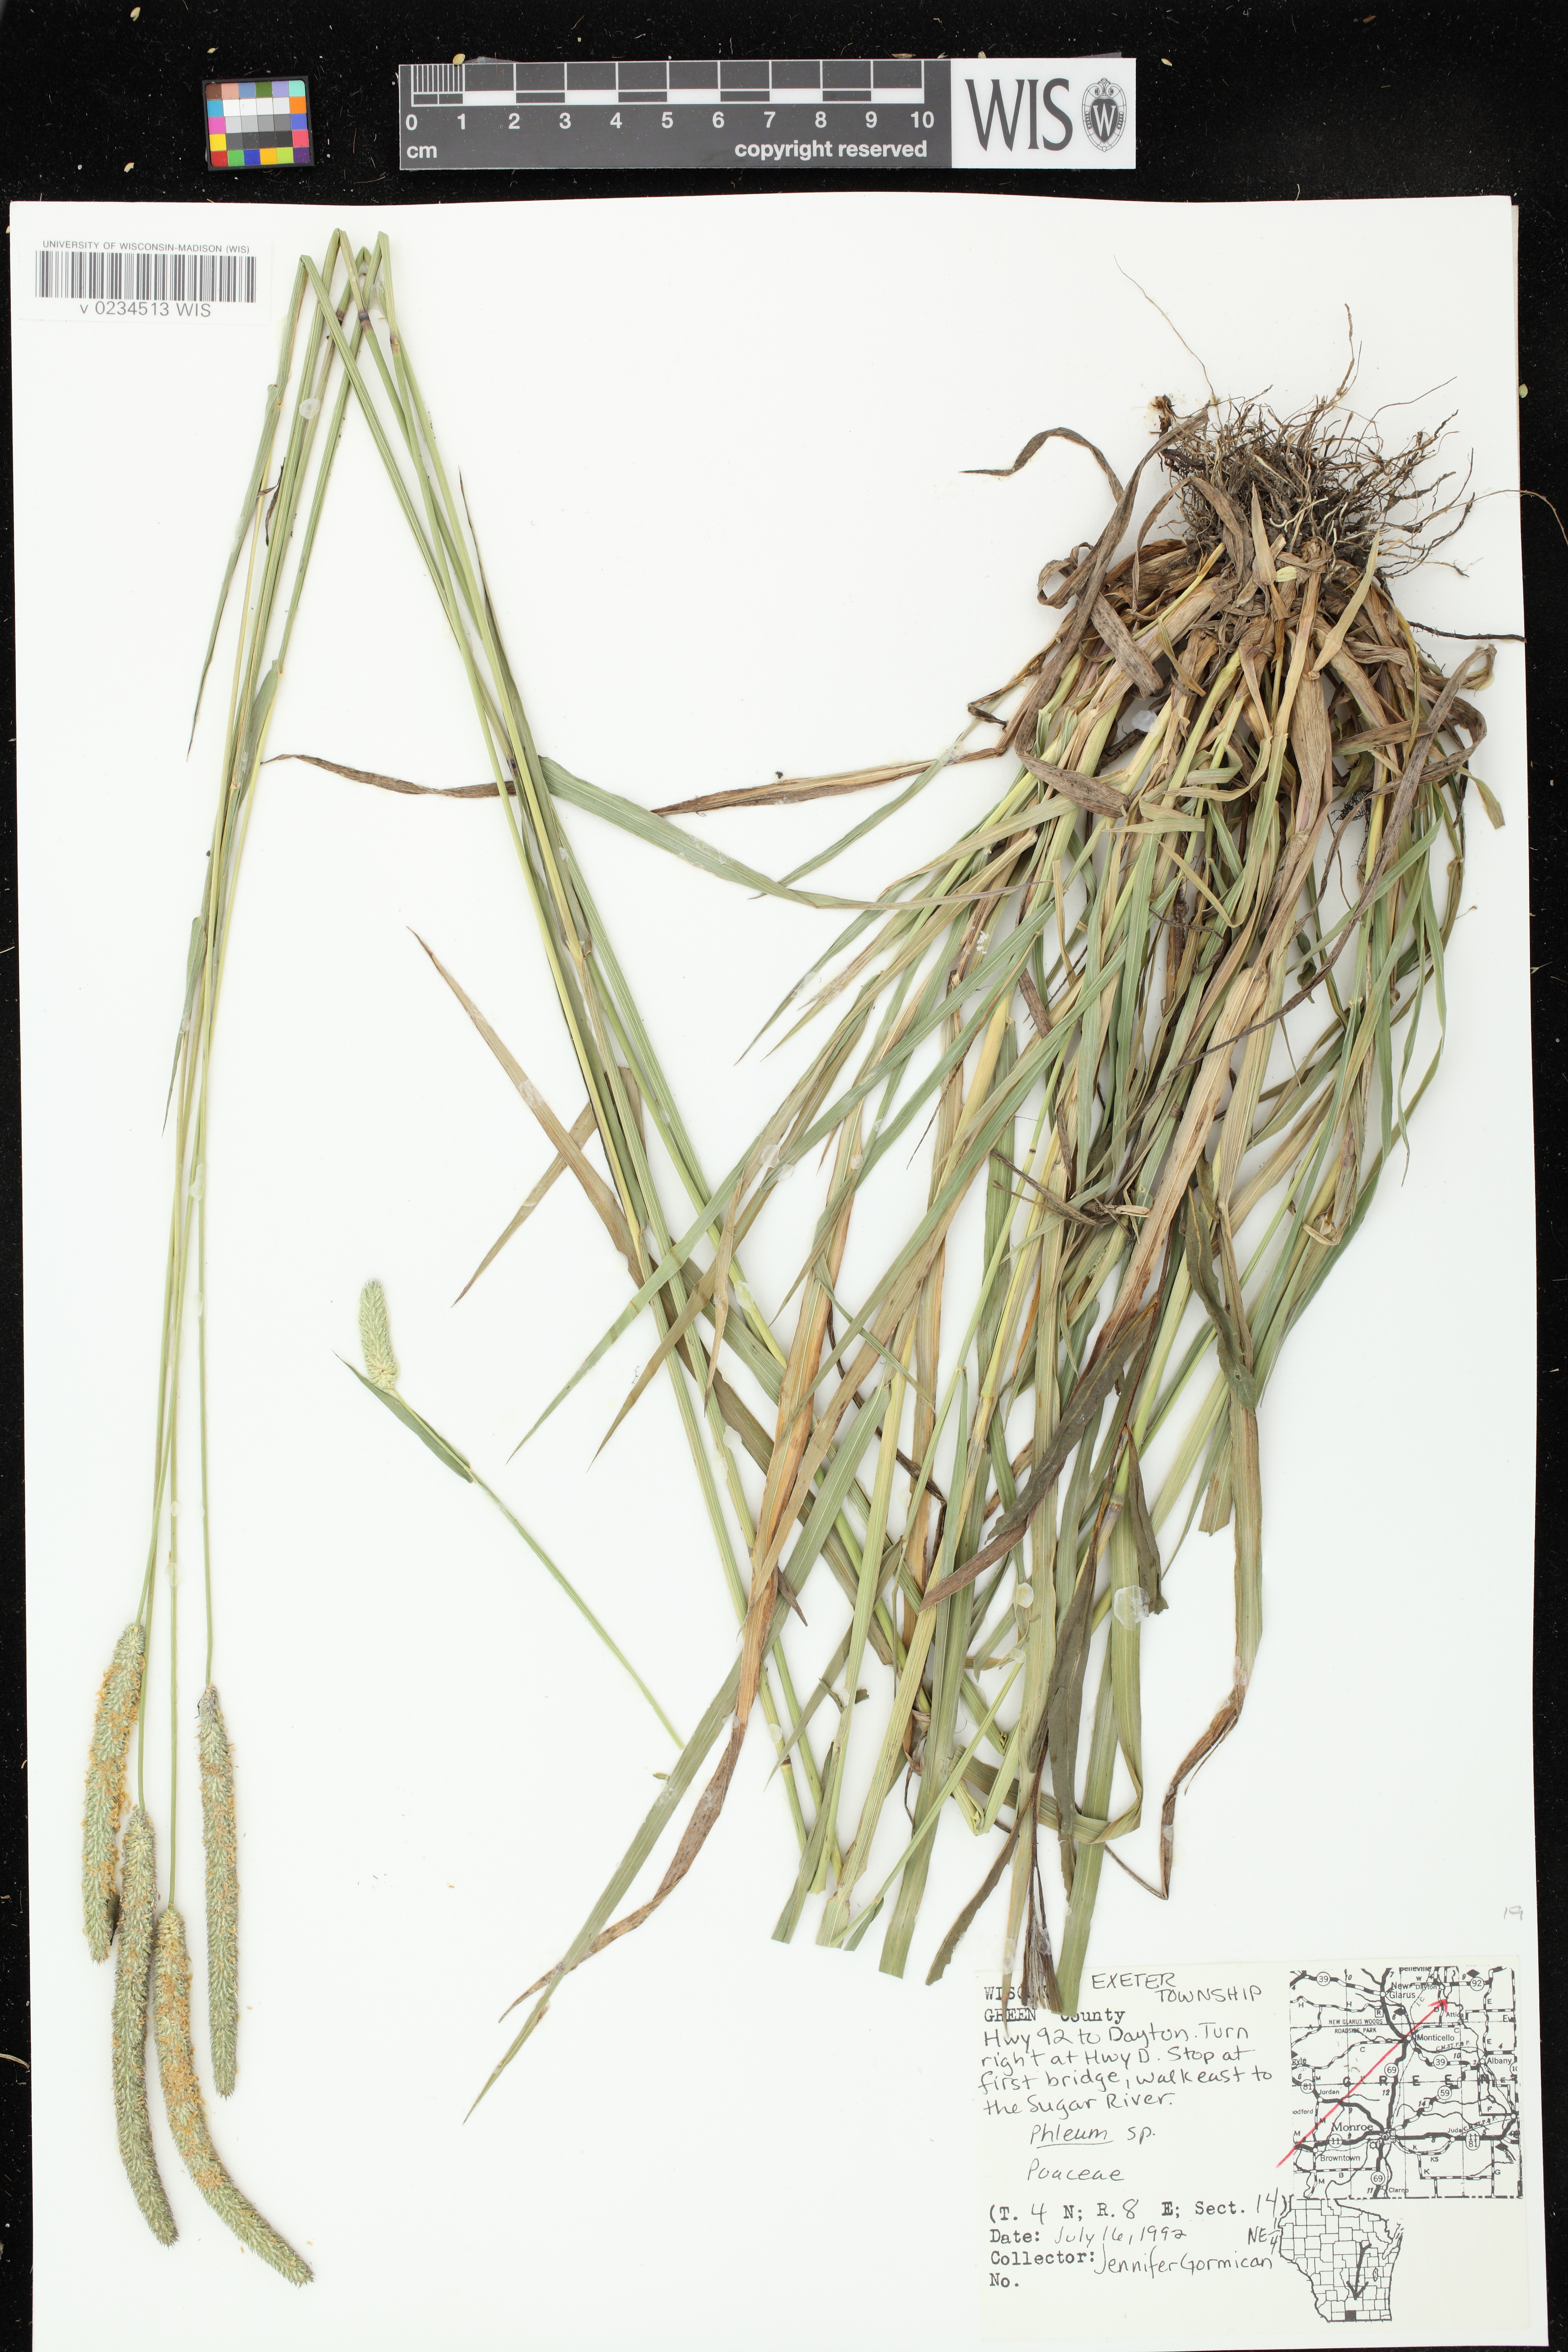 Image of Phleum